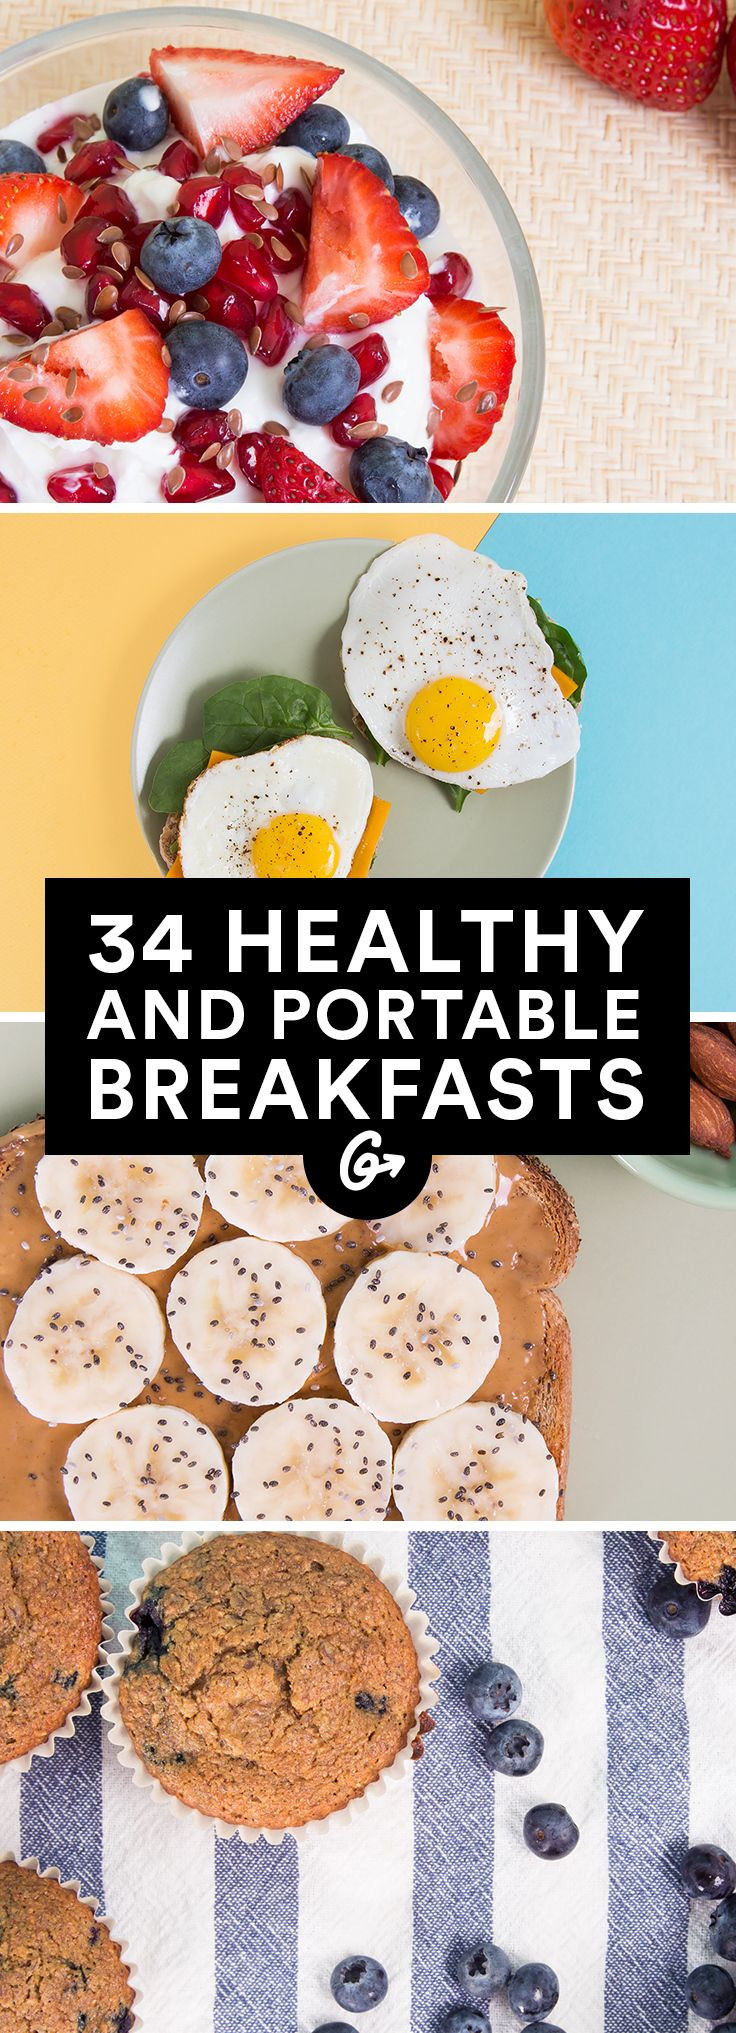 Healthy Fast Food Breakfast Options  Best 25 Healthy fast food choices ideas on Pinterest